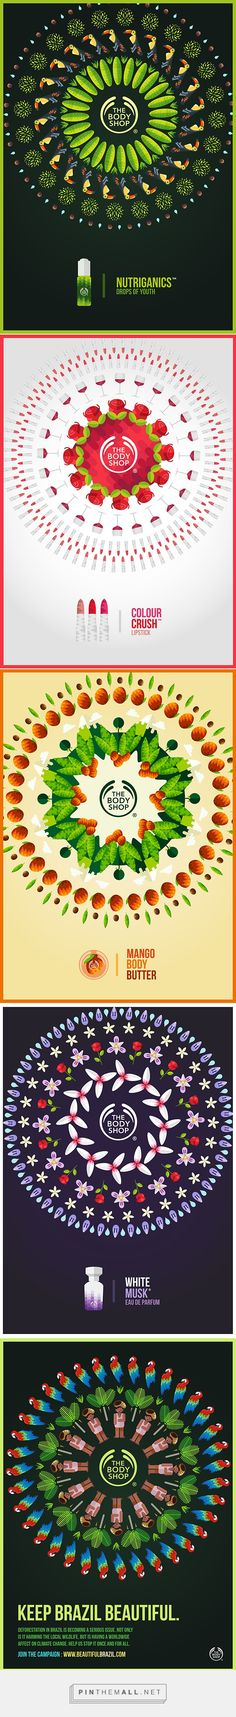 The Body Shop Campaign (by Tom Anders Watkins)